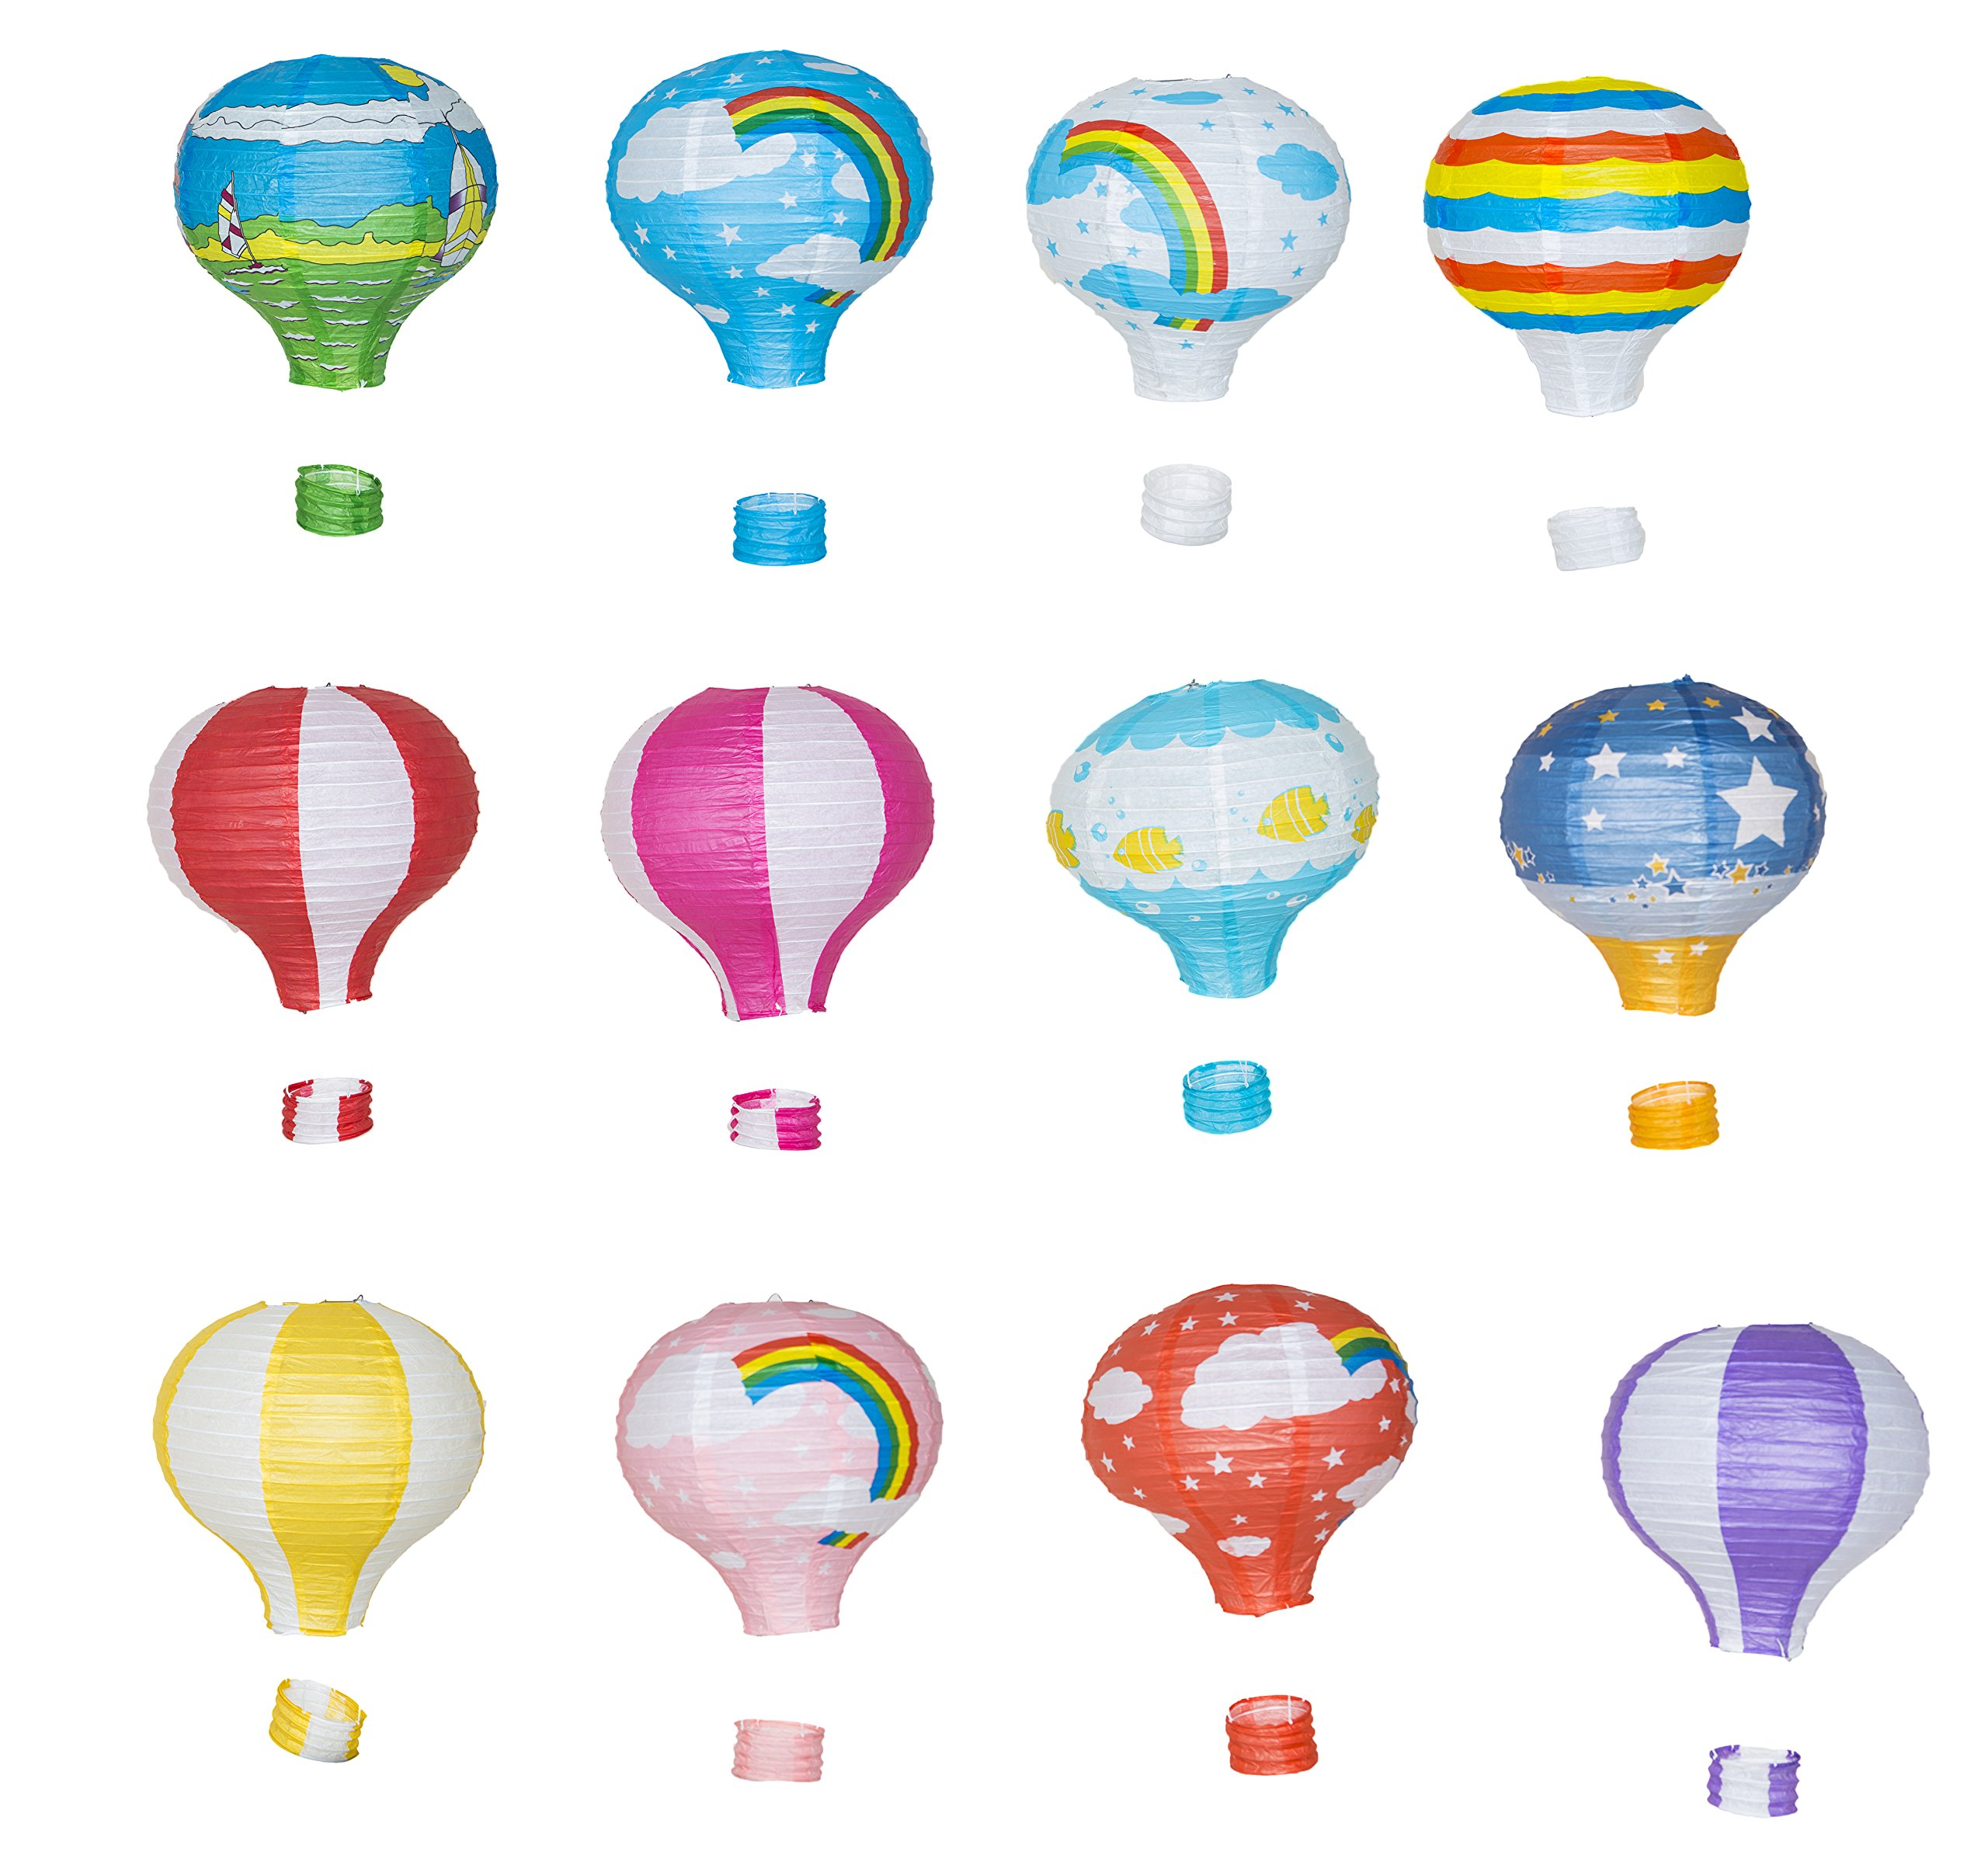 Hot Air Balloon Paper Lantern Reusable Chinese Japanese Party Ball Lamp Decoration 4 Festival Anniversary Christmas Wedding Engagement Happy Birthday String Light Rainbow Star Mix Color Set of 12